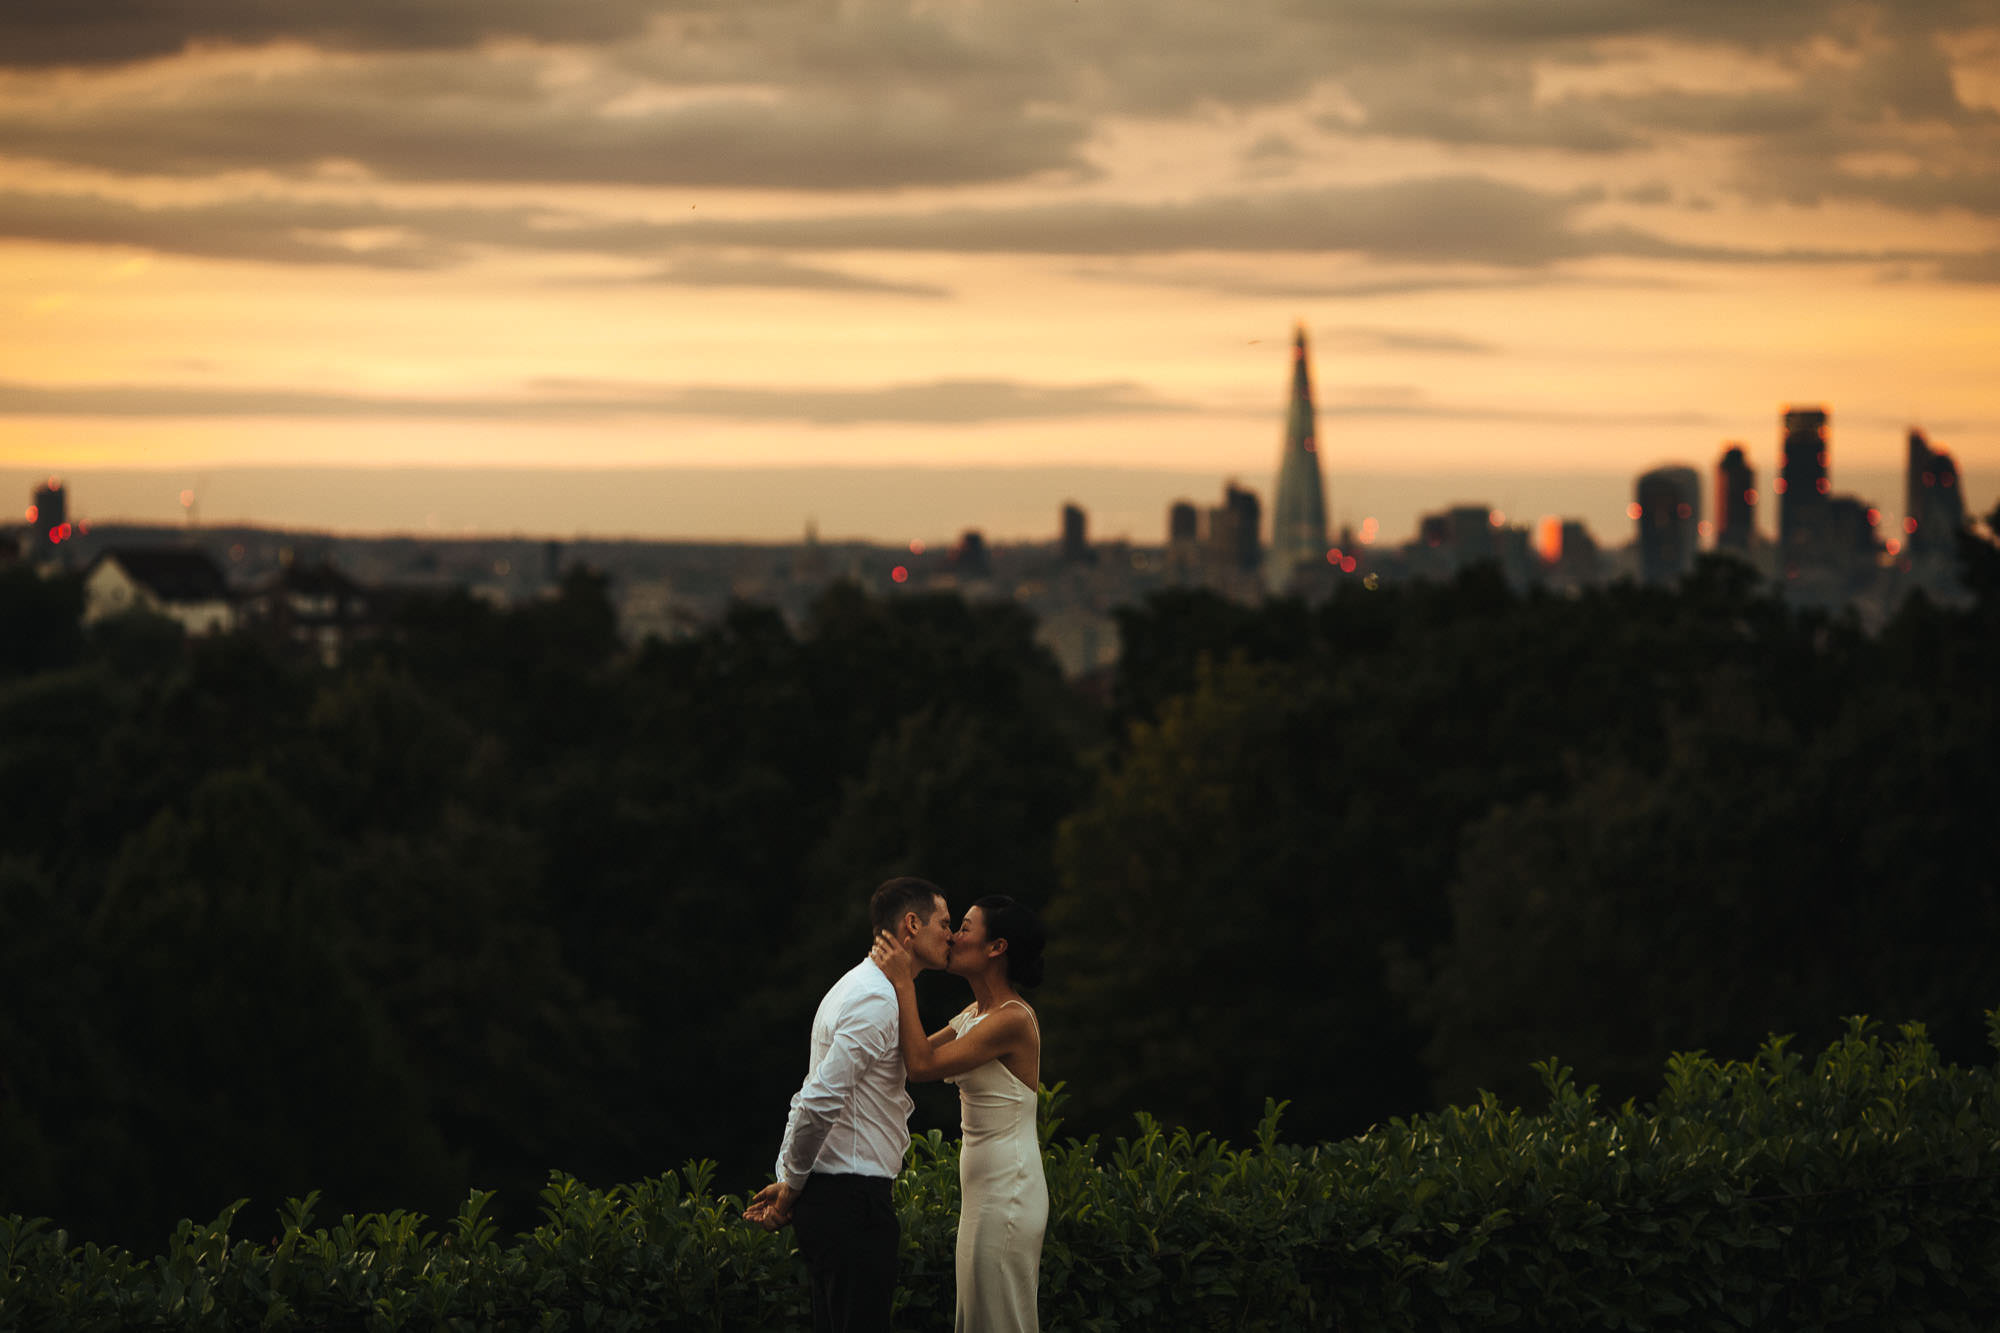 horniman museum wedding photograph